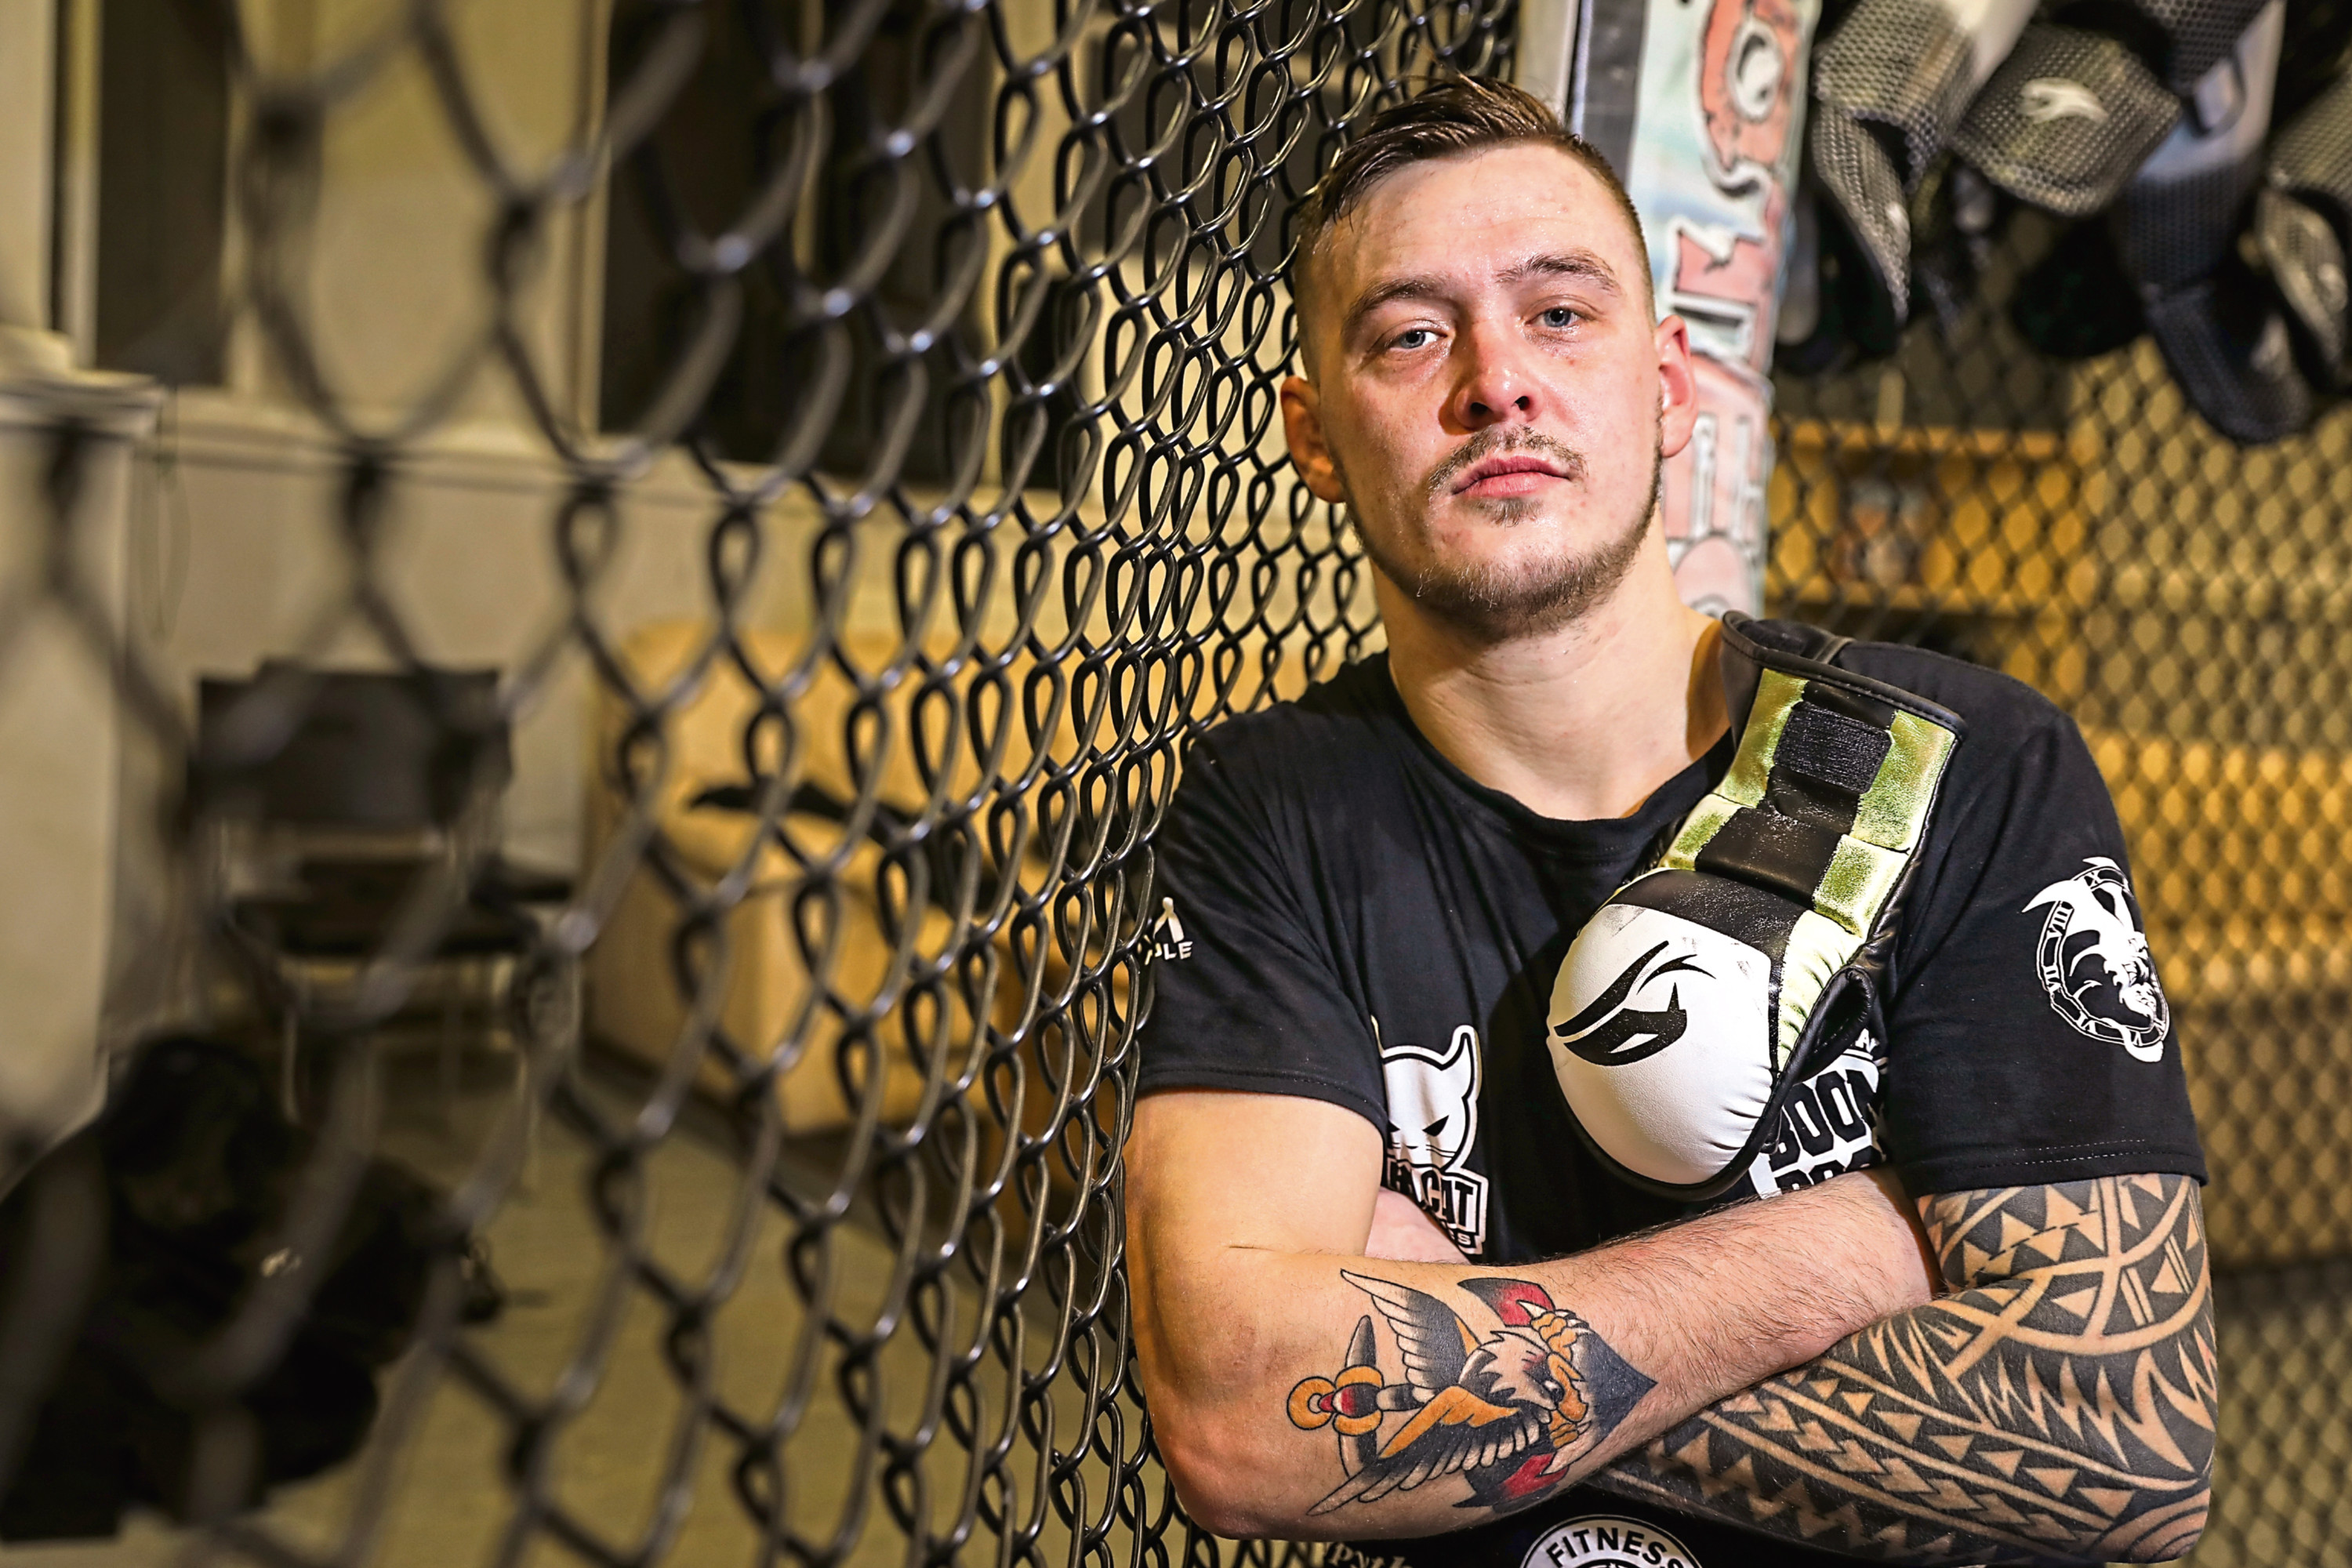 Dundee MMA fighter Scott Malone